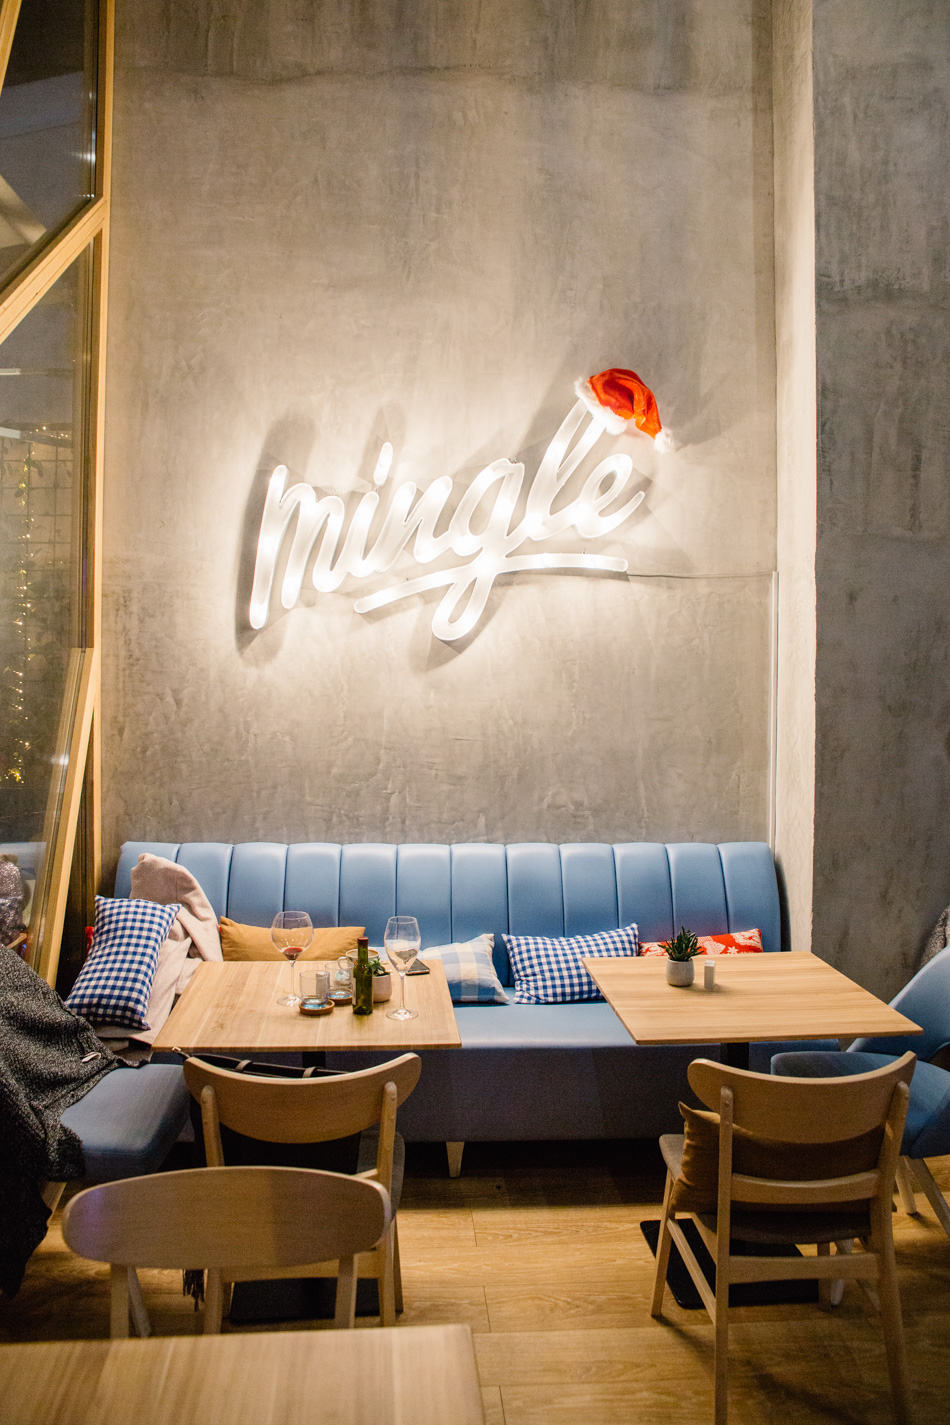 Late Lunch at Mingle Cafe, Larnaca